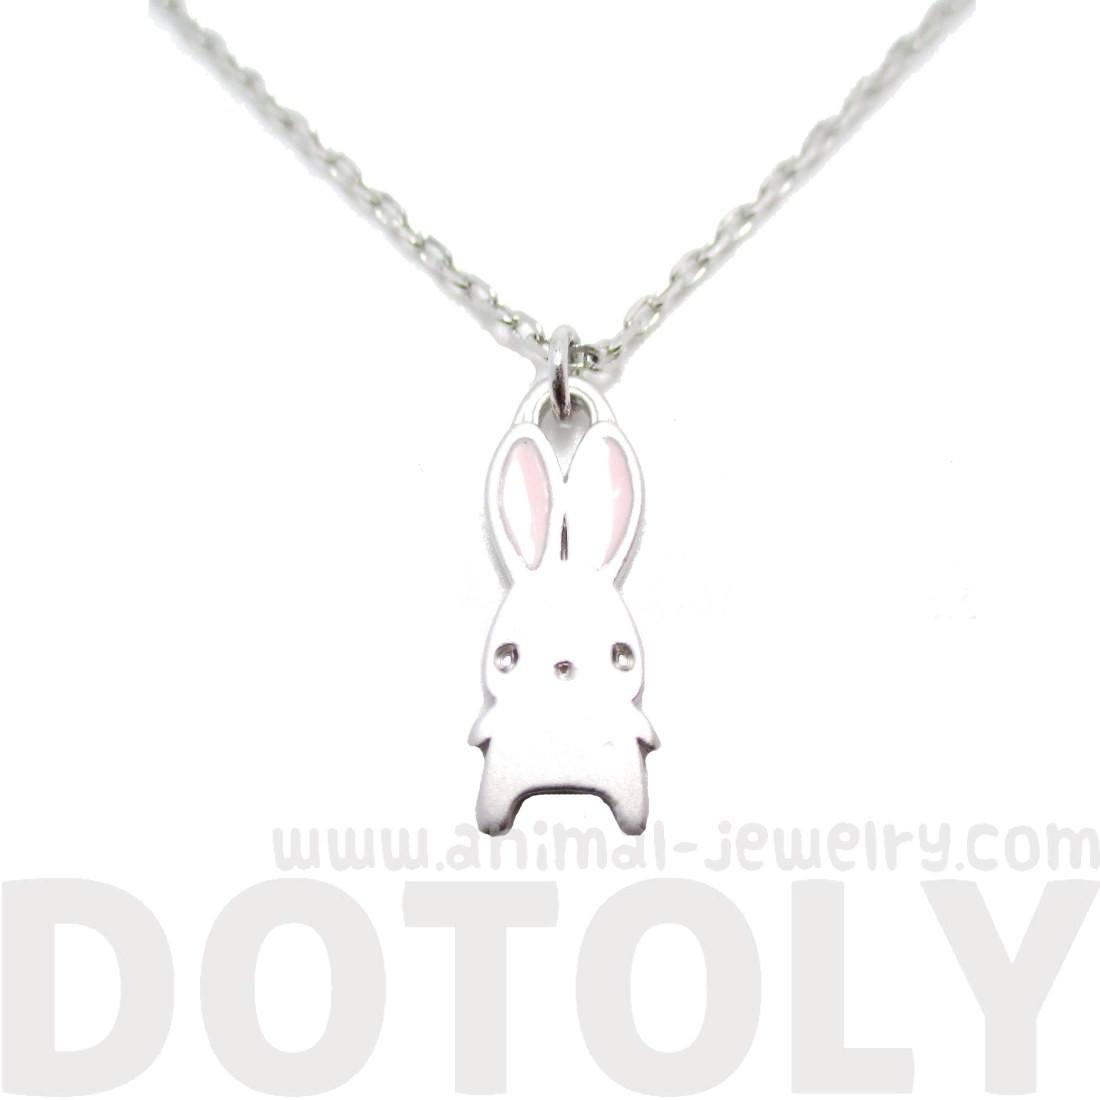 Adorable Little Cartoon Bunny Rabbit Shaped Necklace